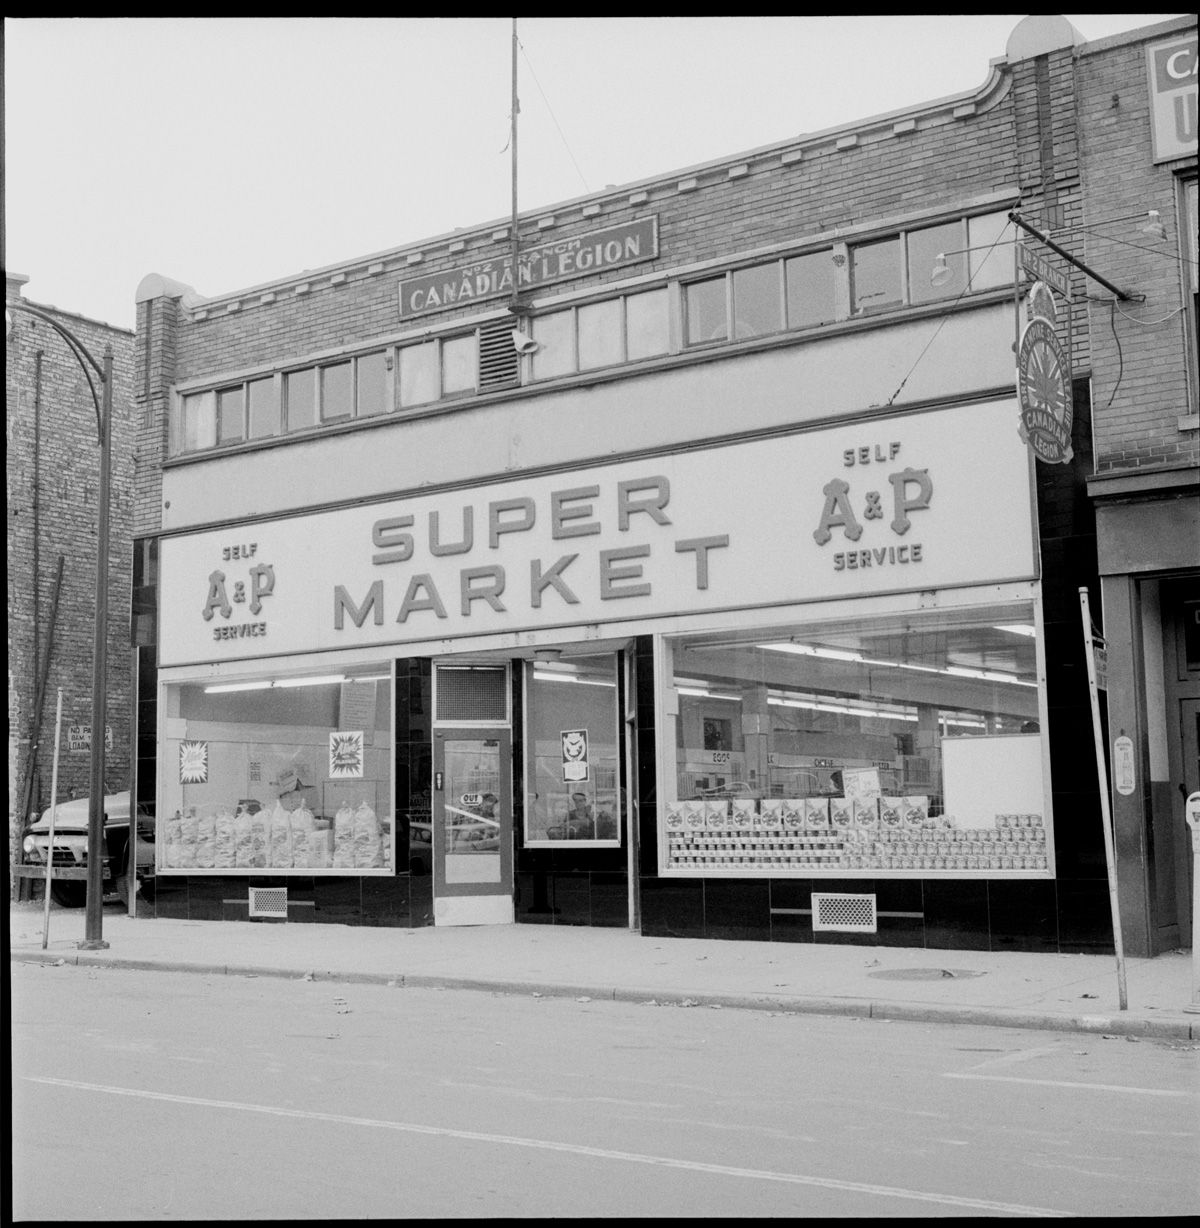 Exterior of A & P store, King St. Nov 7, 1955 Vintage london